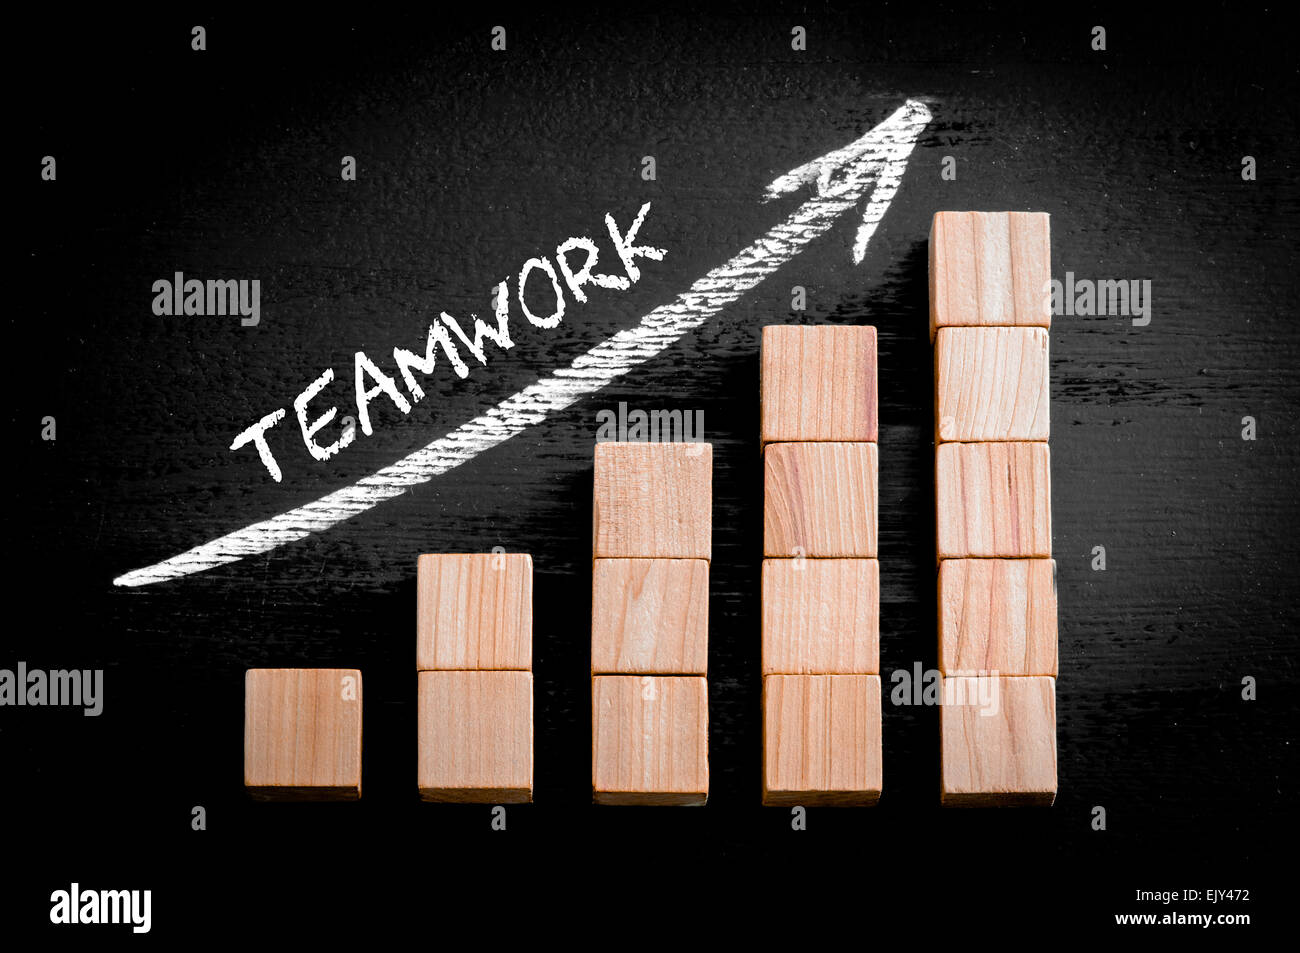 Word Teamwork on ascending arrow above bar graph of Wooden small cubes isolated on black background. Chalk drawing - Stock Image